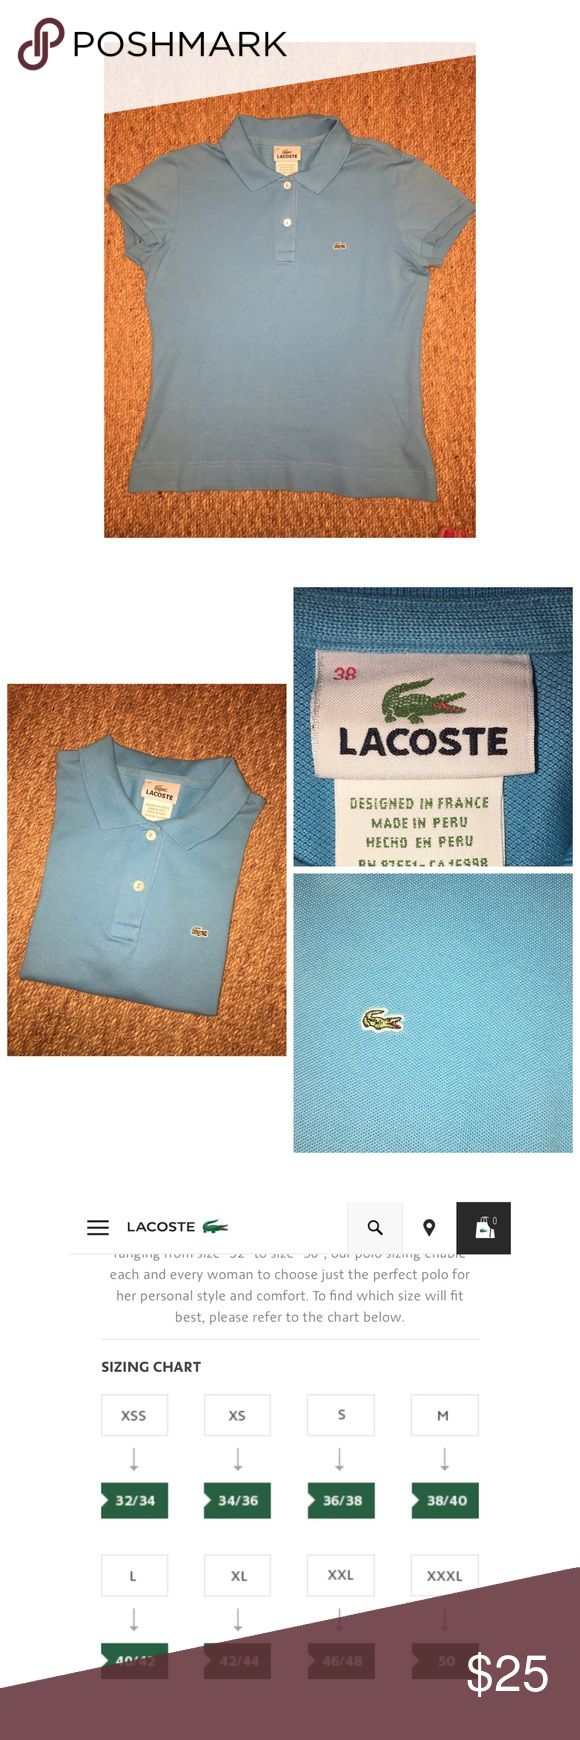 Lacoste Polo Shirt Pre•loved Lacoste Polo Shirt. Size 38/S. Made of a Cotton/Elastane blend. Light Blue color. Shows slight fading around the inside collar, not noticeable when worn.                                          Short Sleeve Classic polo in classic body Petite pique fabrication Ribbed Collar And Armbands Classic Fit. Good condition Lacoste Tops